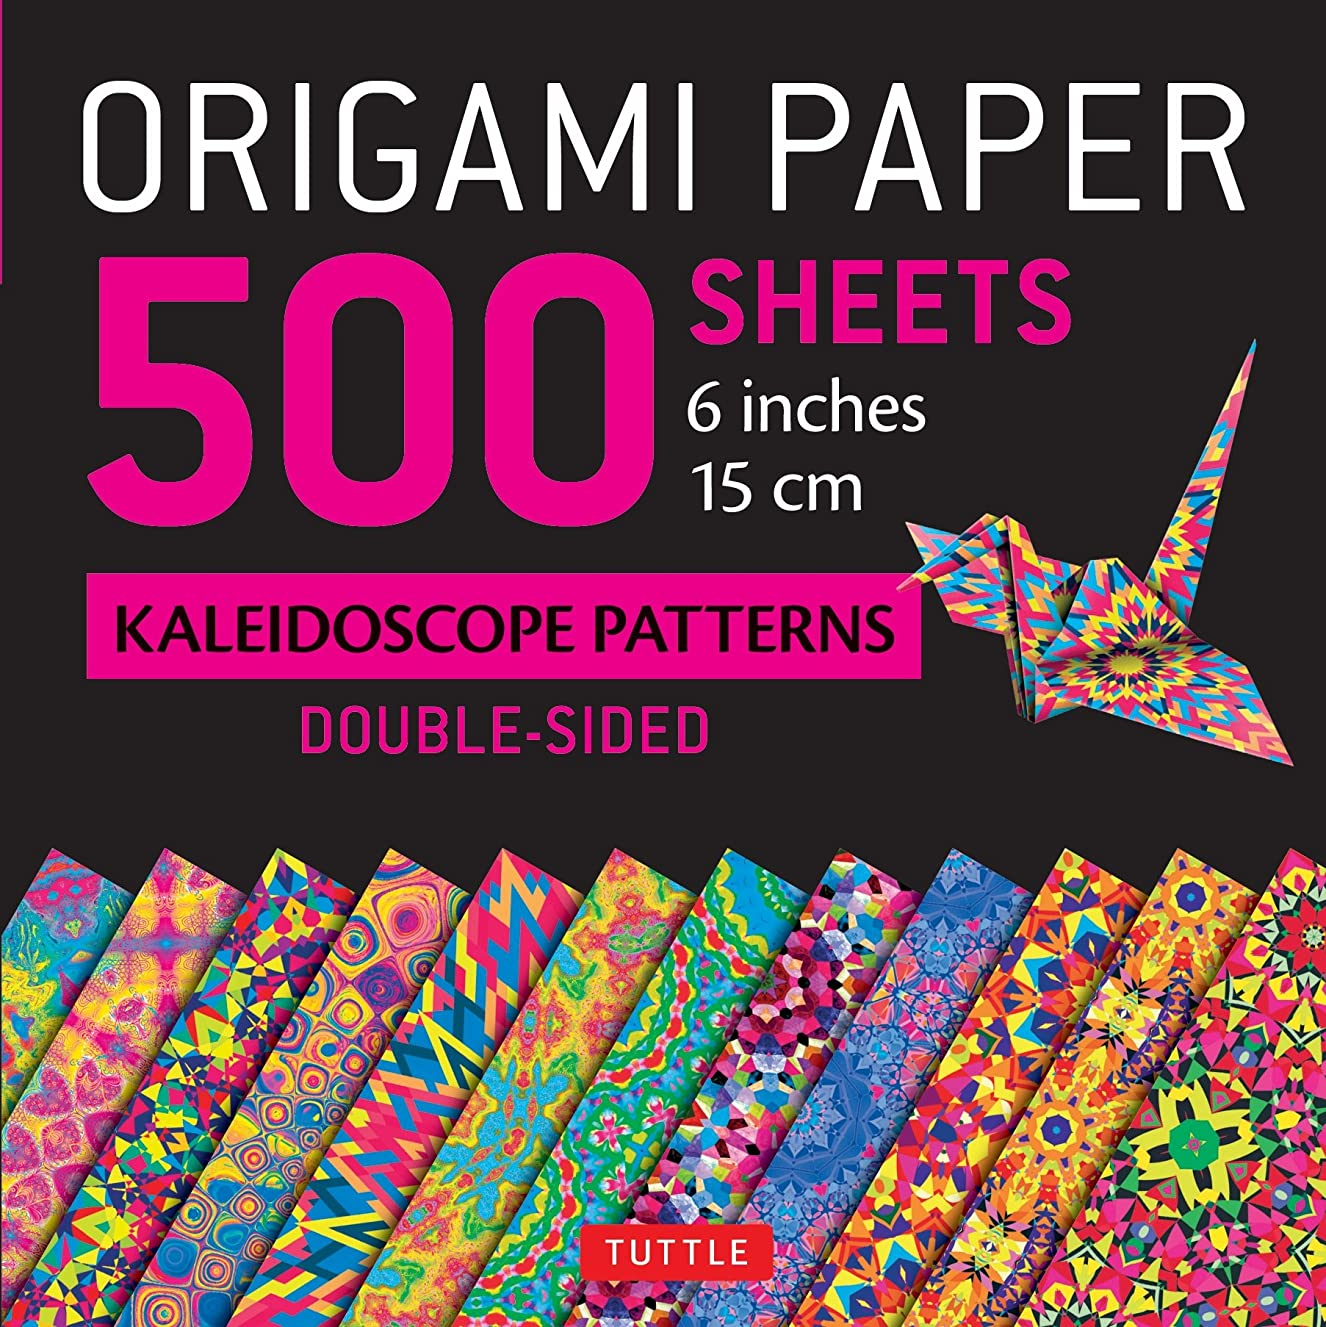 Origami Paper 500 sheets Kaleidoscope Patterns 6